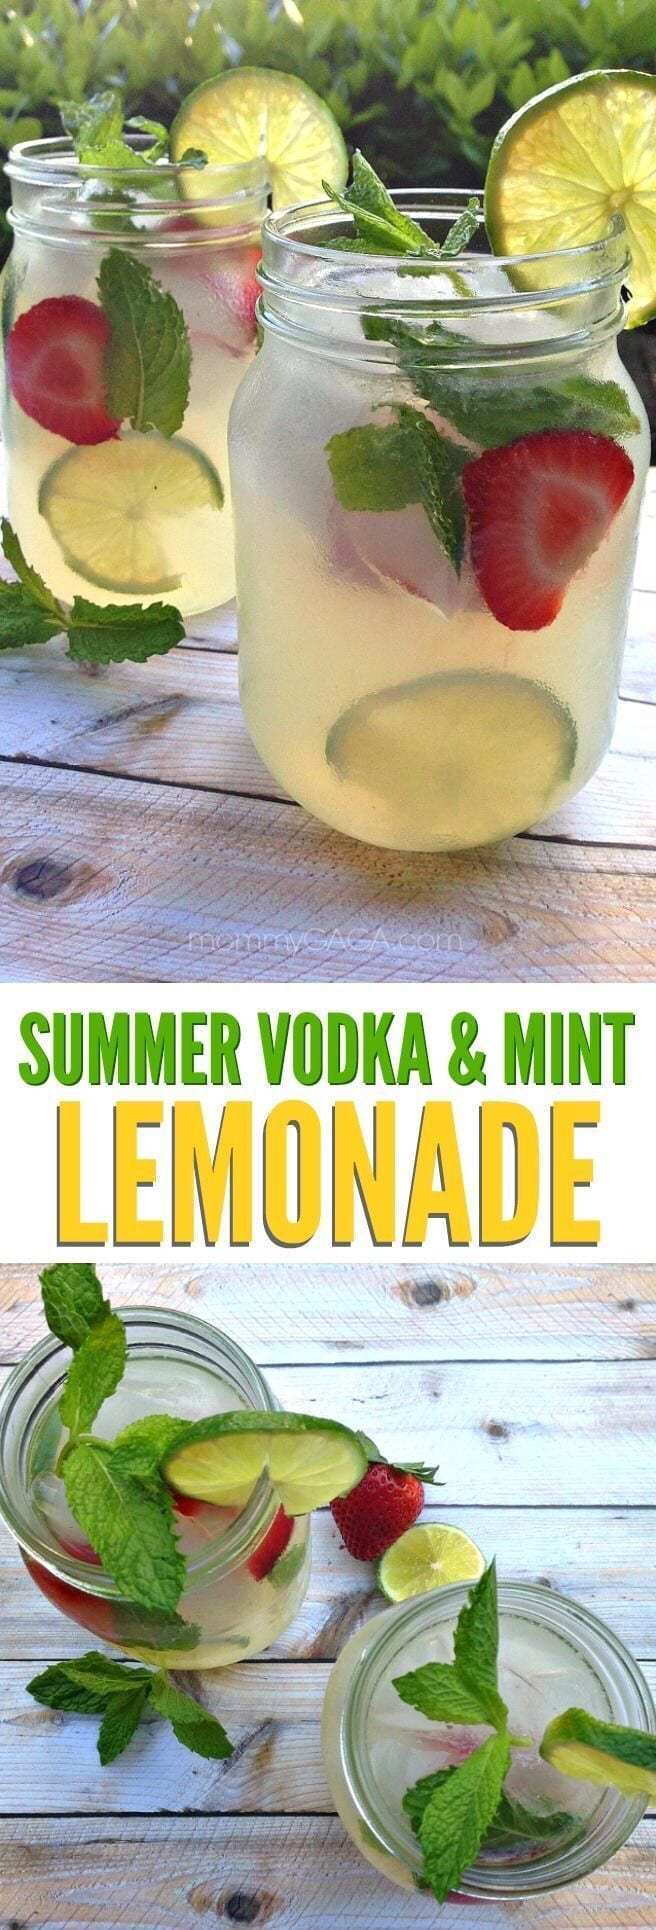 3. Summer Vodka & Mint Lemonade